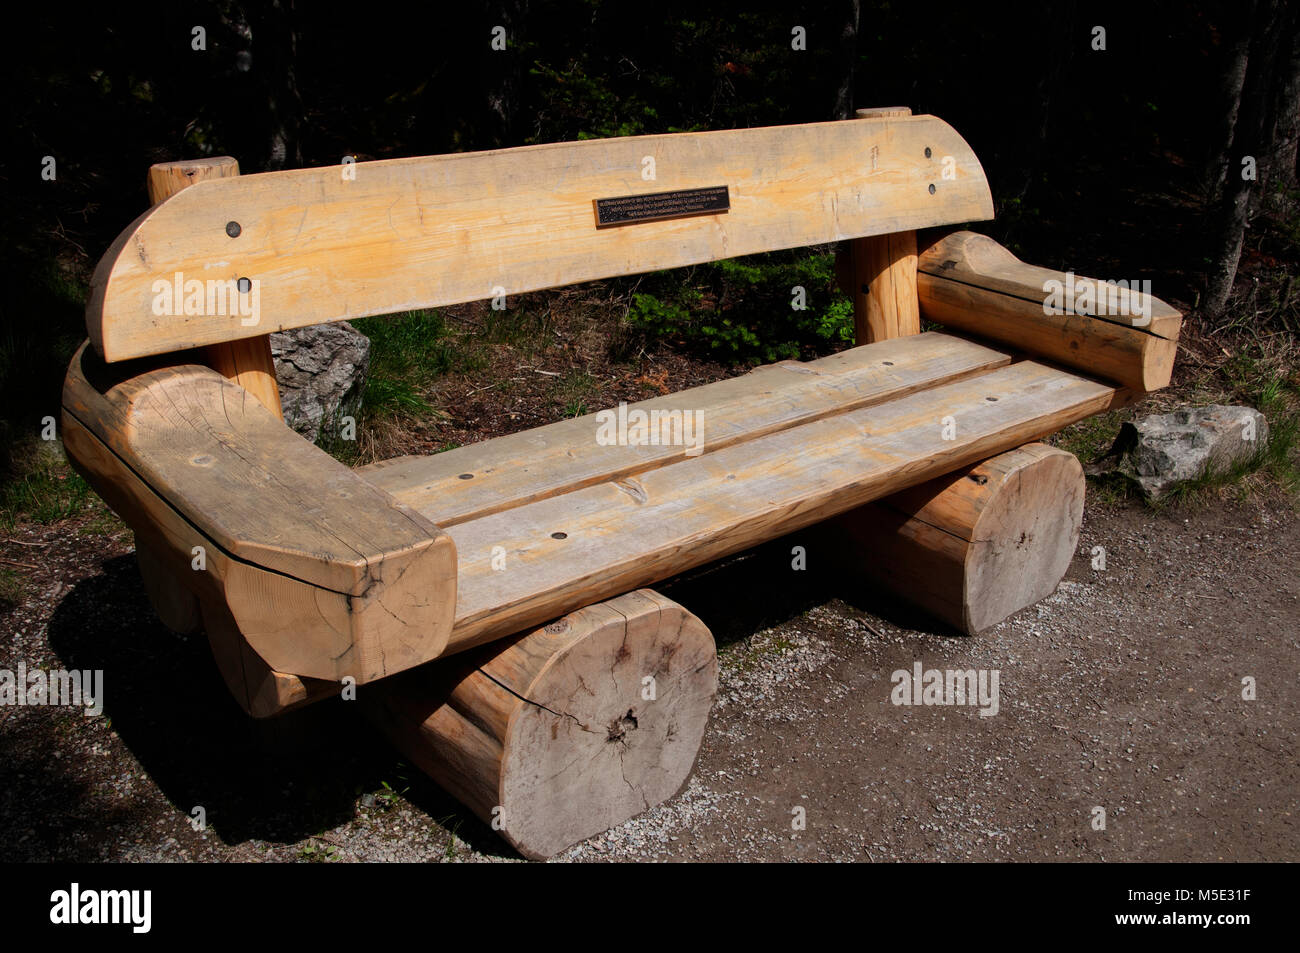 Log Bench - Stock Image